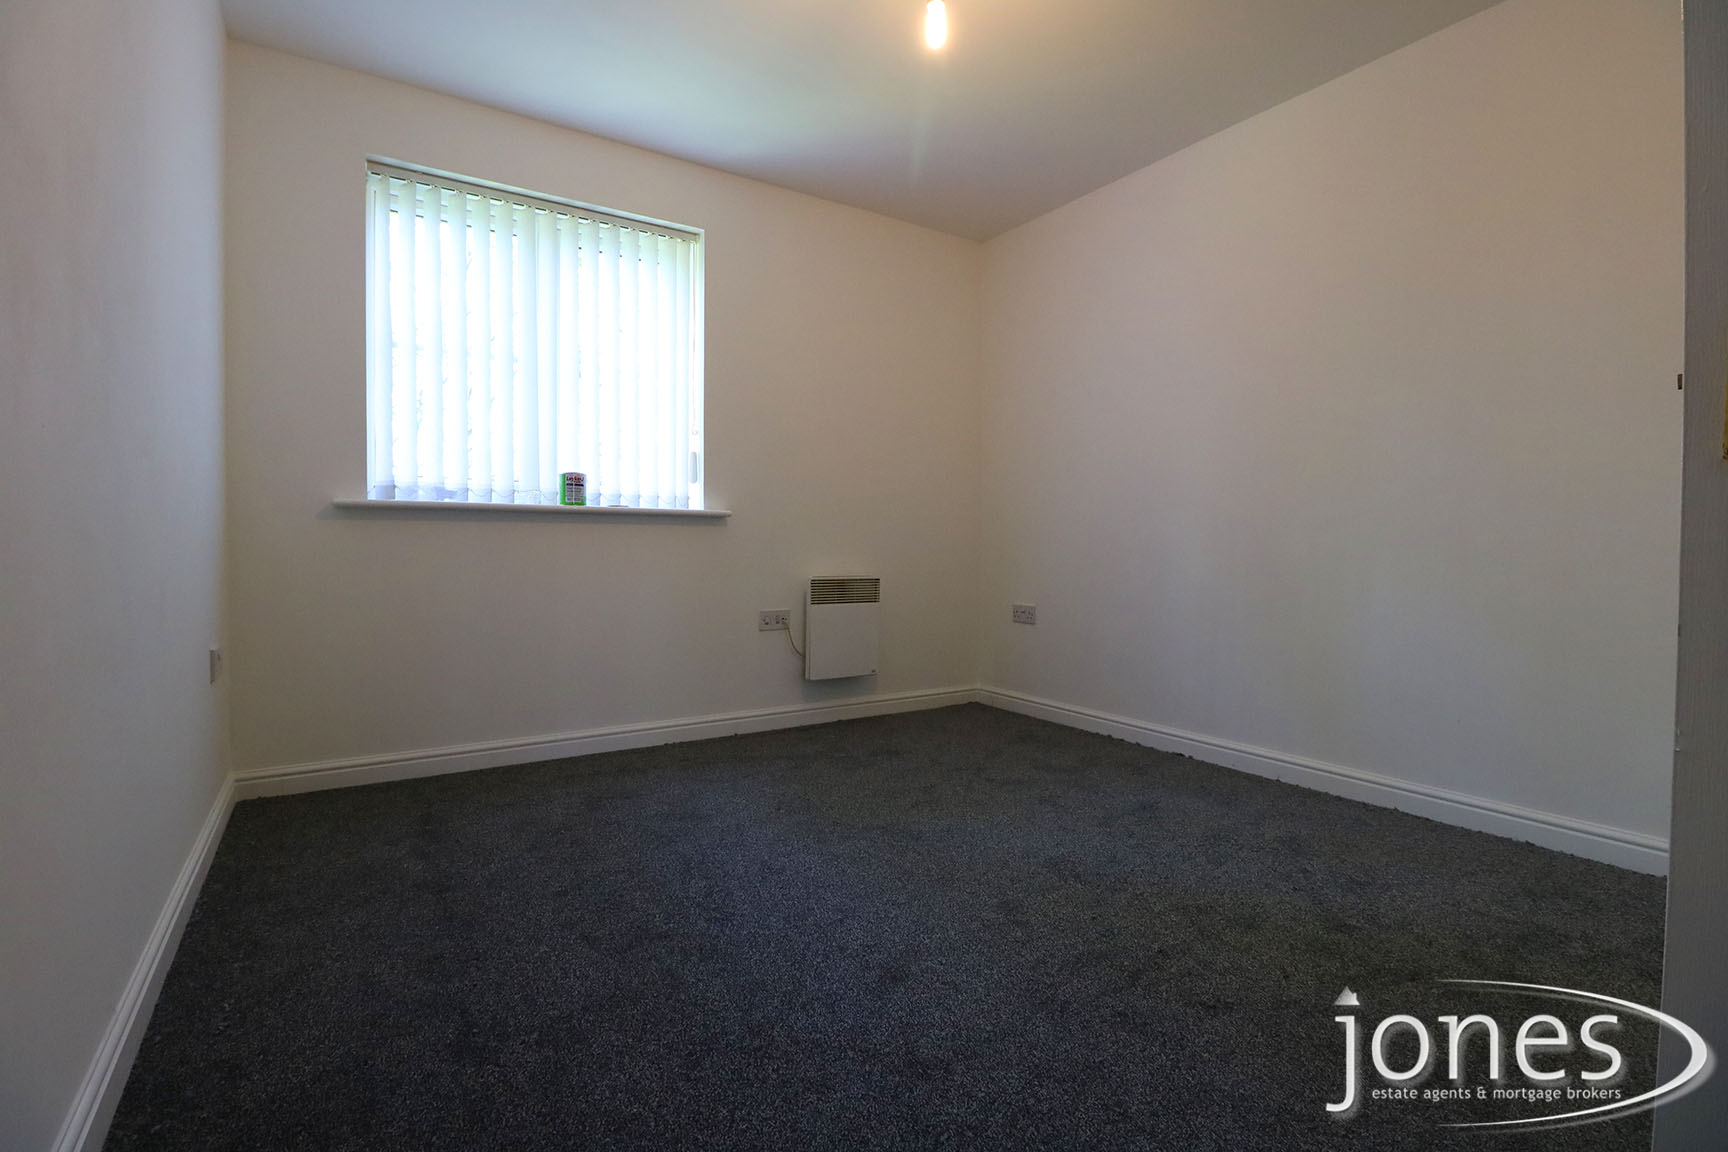 Home for Sale Let - Photo 04 Earls Court, Norton, Stockton on Tees TS20 2NP